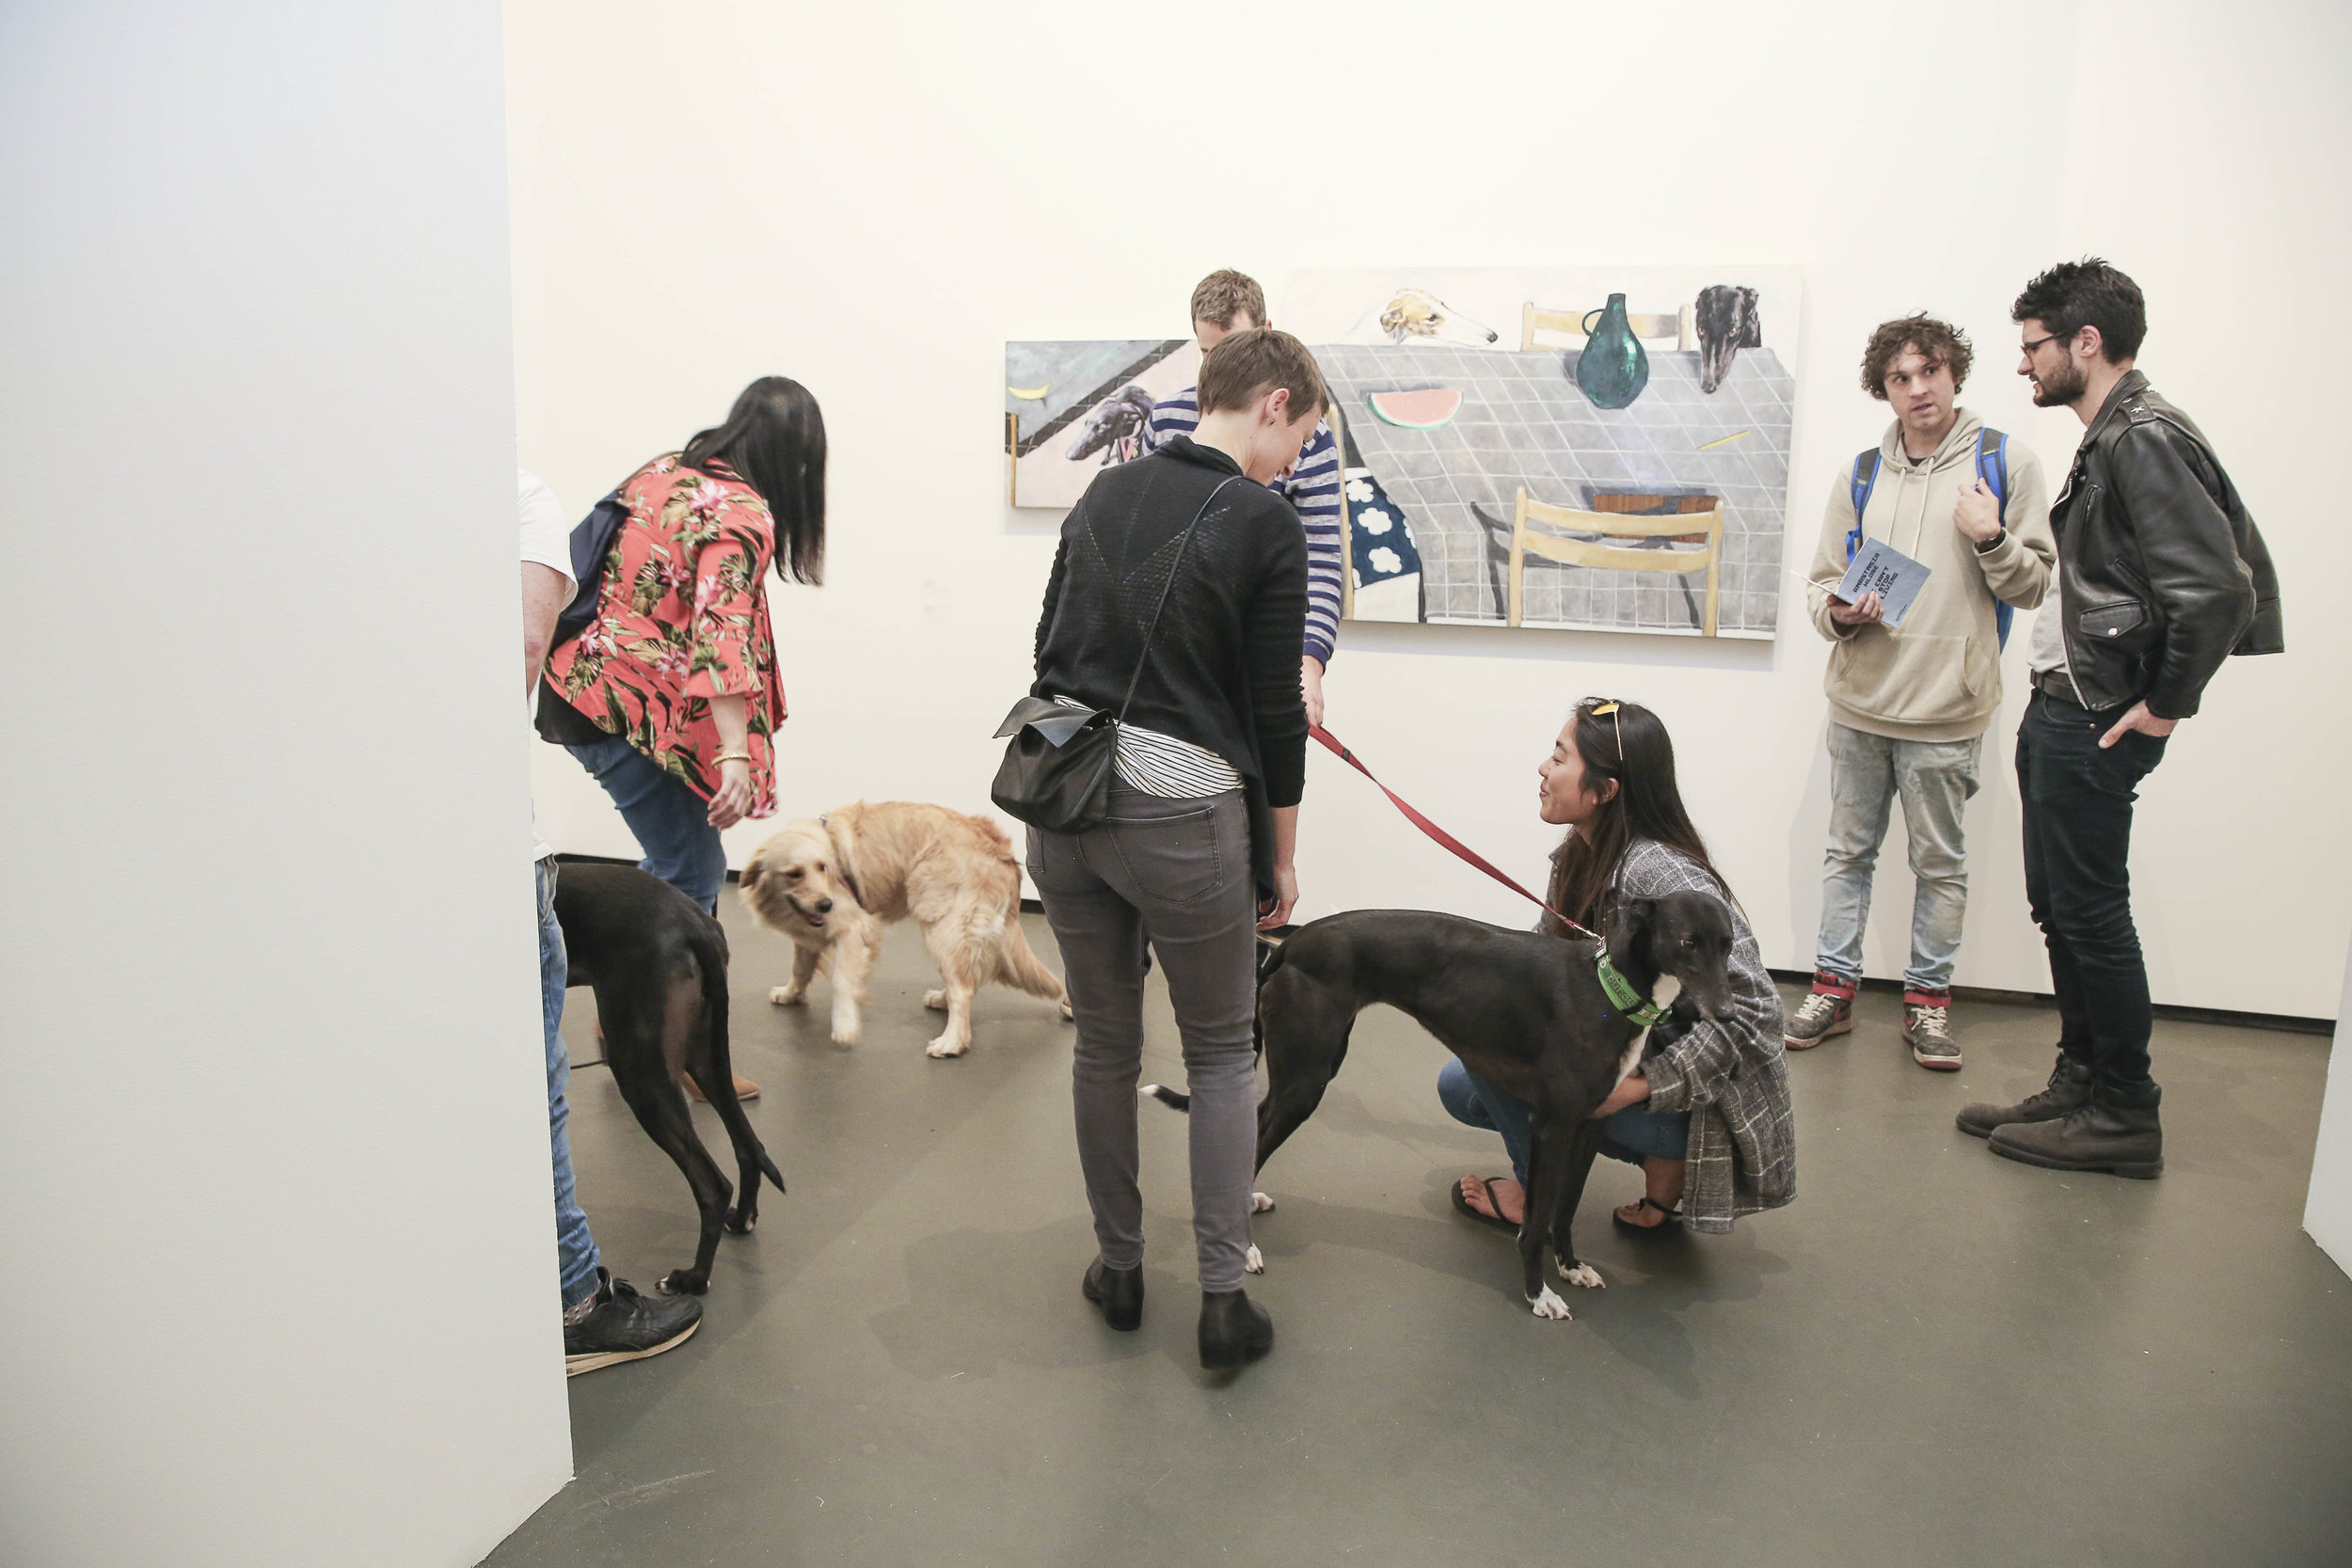 Visitors at the exhibition launch,  Every Dog Will Have its Day,  2017, Casula Powerhouse Arts Centre, Sydney. Photo: Andrea Todic